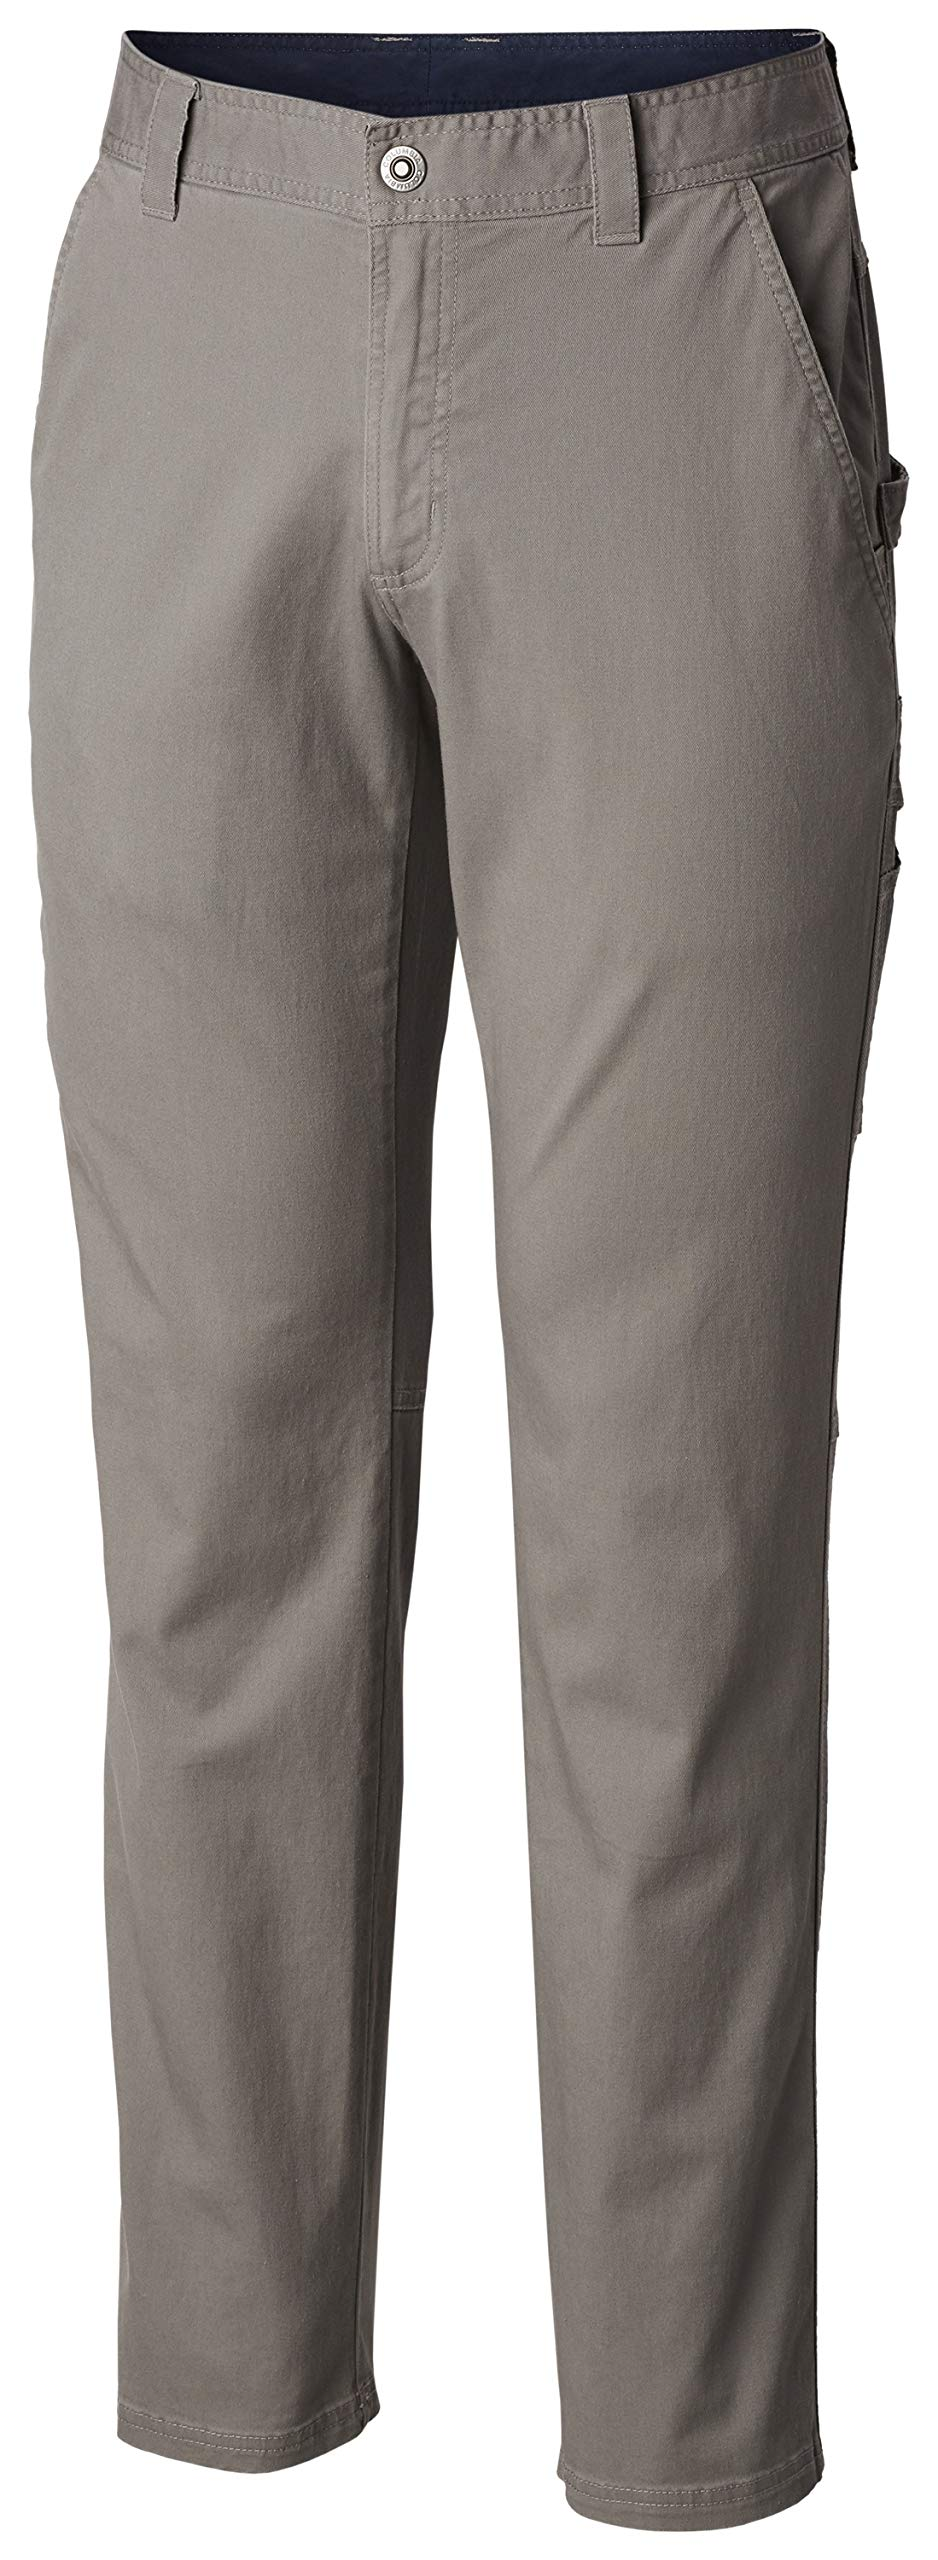 Columbia Men's Ultimate ROC Flex Pant, Boulder 30x30